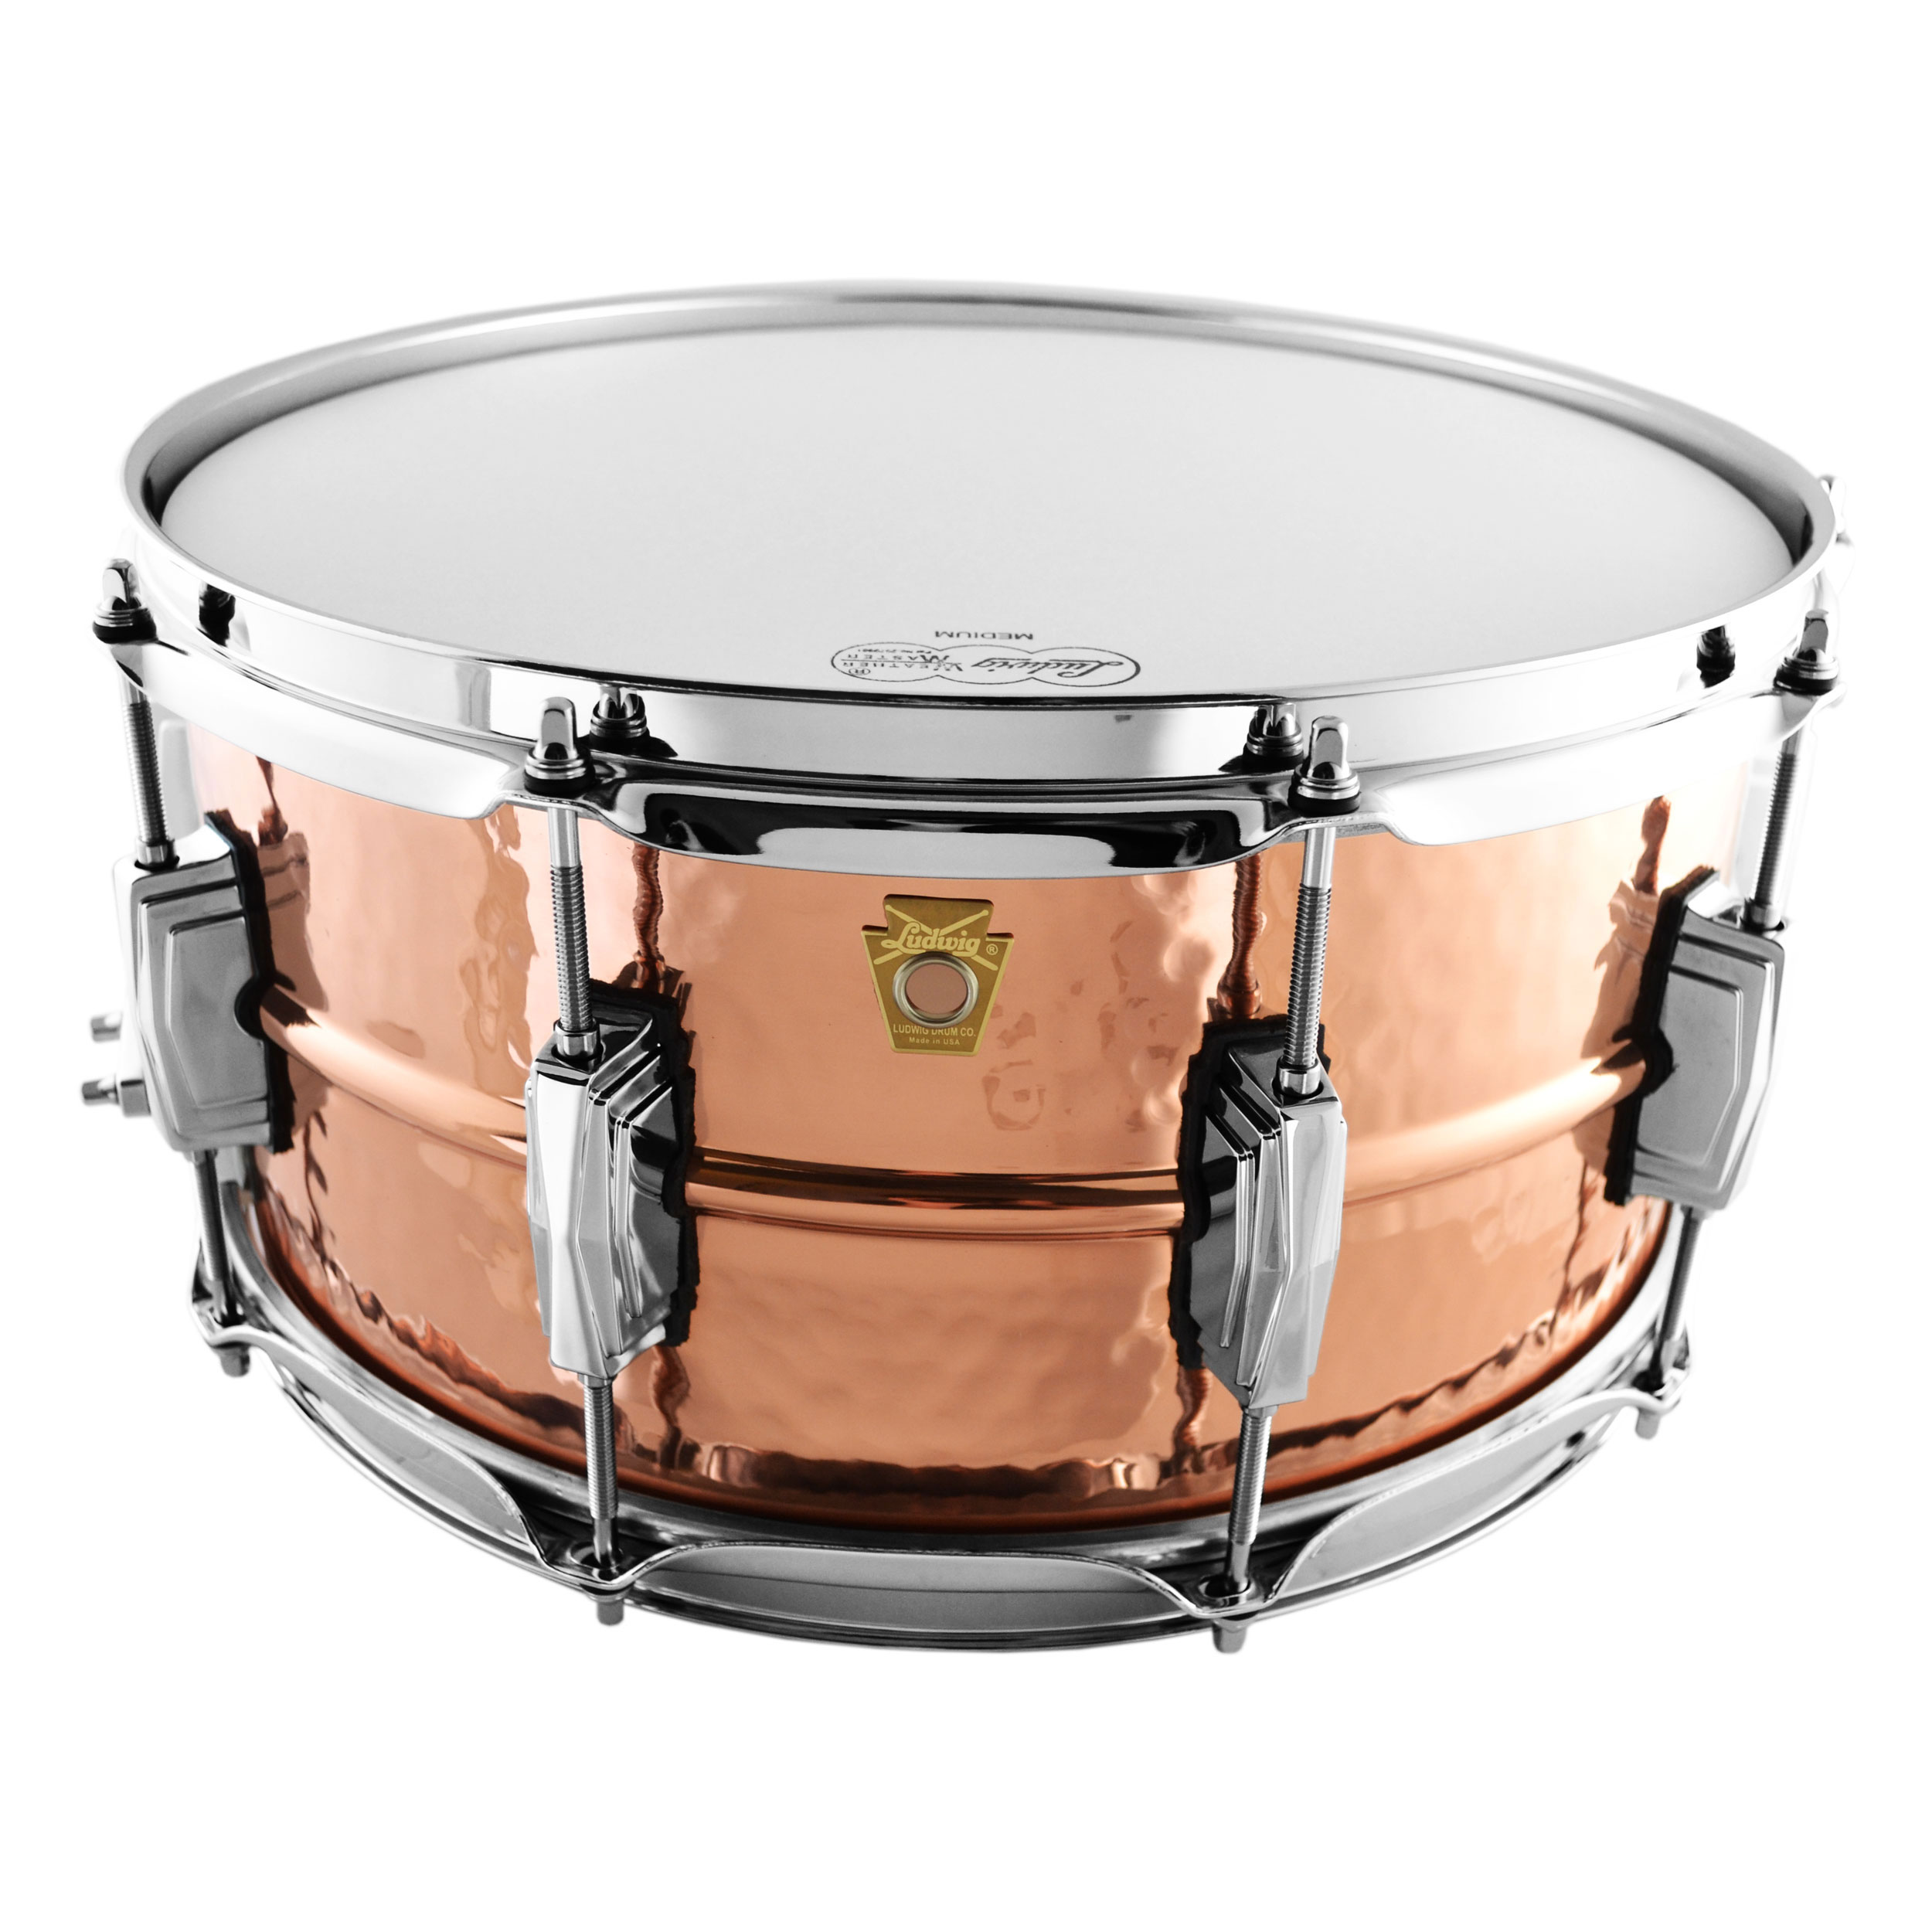 "Ludwig 6.5"" x 14"" Hammered Copper Phonic Snare Drum with Imperial Lugs"